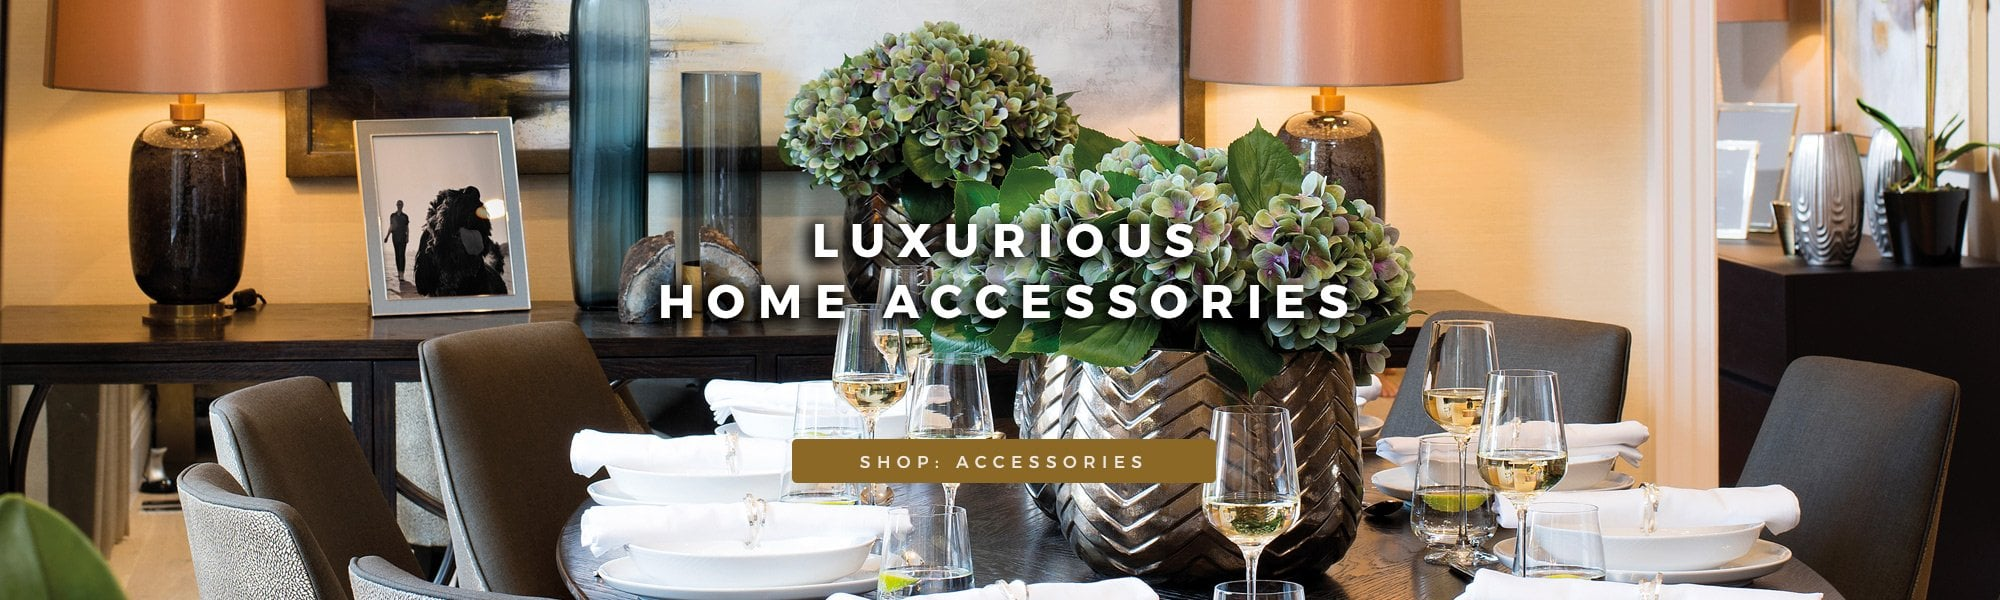 Luxurious Home Accessories